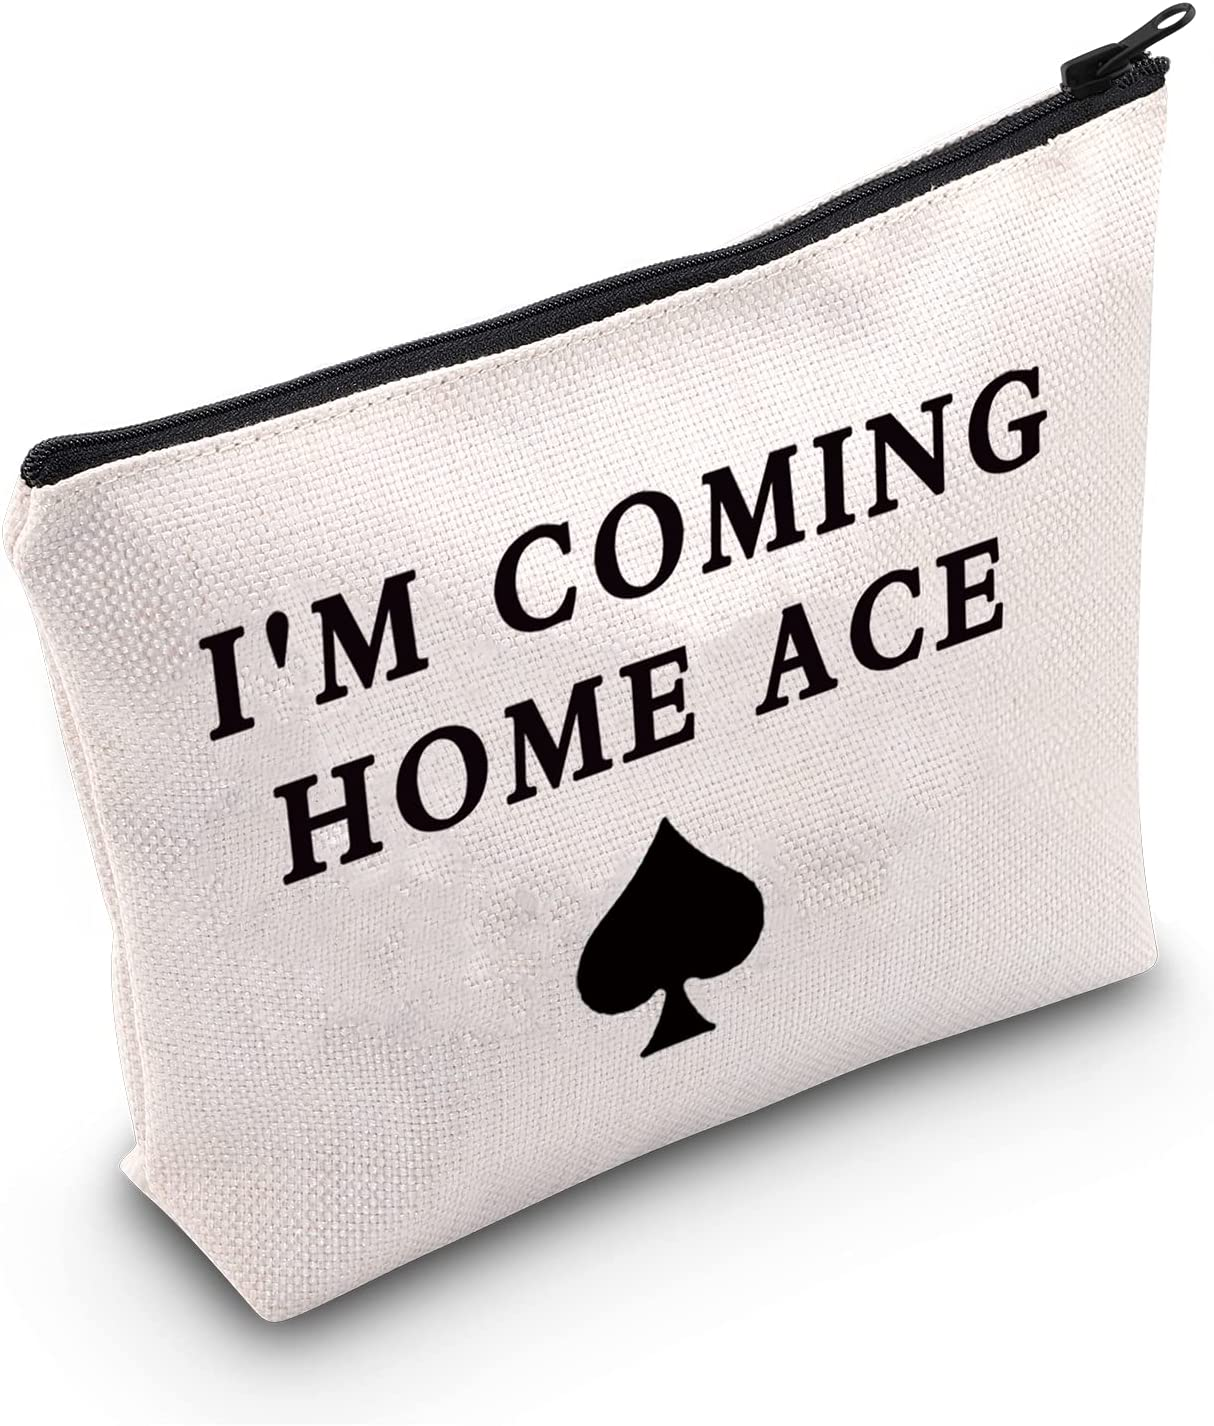 TSOTMO Ace of Spades Destiny survival kit Cosmetic Bag Gift Destiny Fans Gift I'm Coming Home Ace Cosmetic Bag Gift for Video GamersGuardians Gift (Come Home)